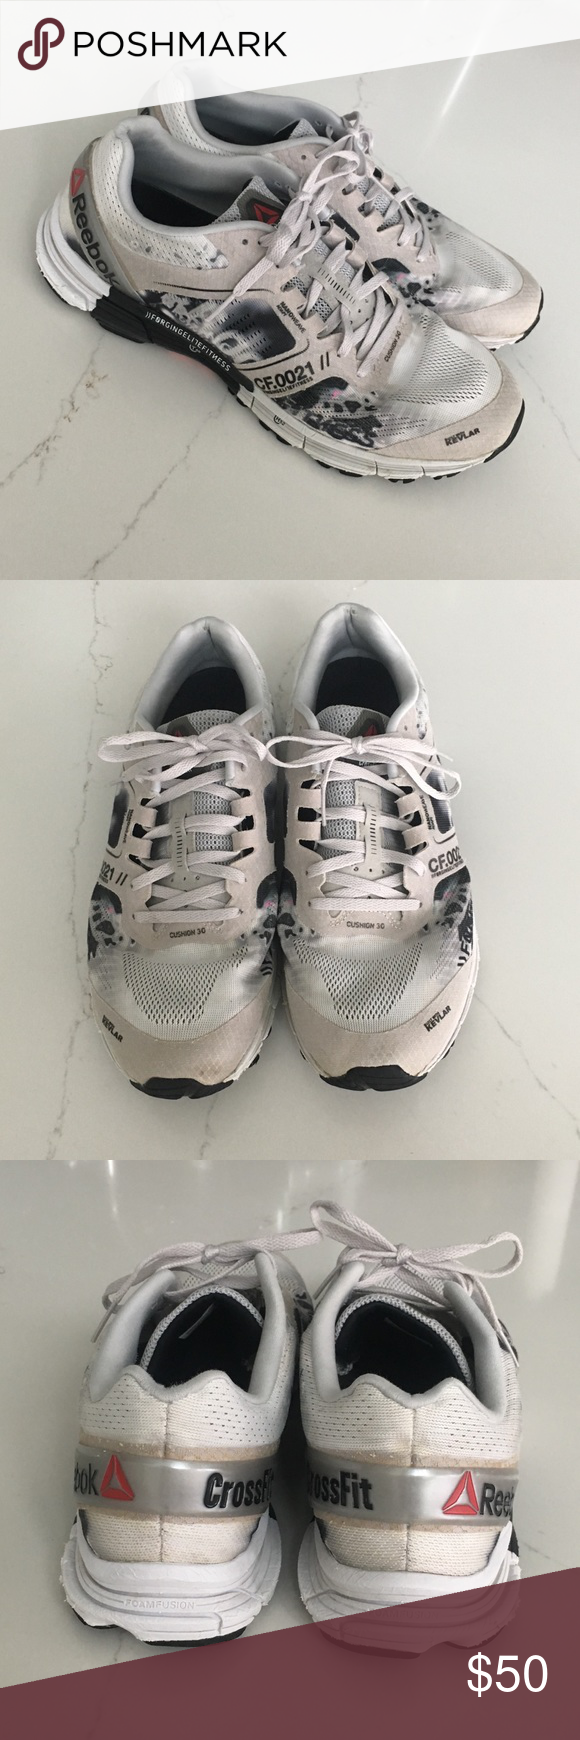 a9e33142e25034 Reebok Men One Cushion 3.0 CrossFit Edition runner This CrossFit edition  Reebok One Cushion 3.0 running shoe in white alloy black s upper is made  with ...